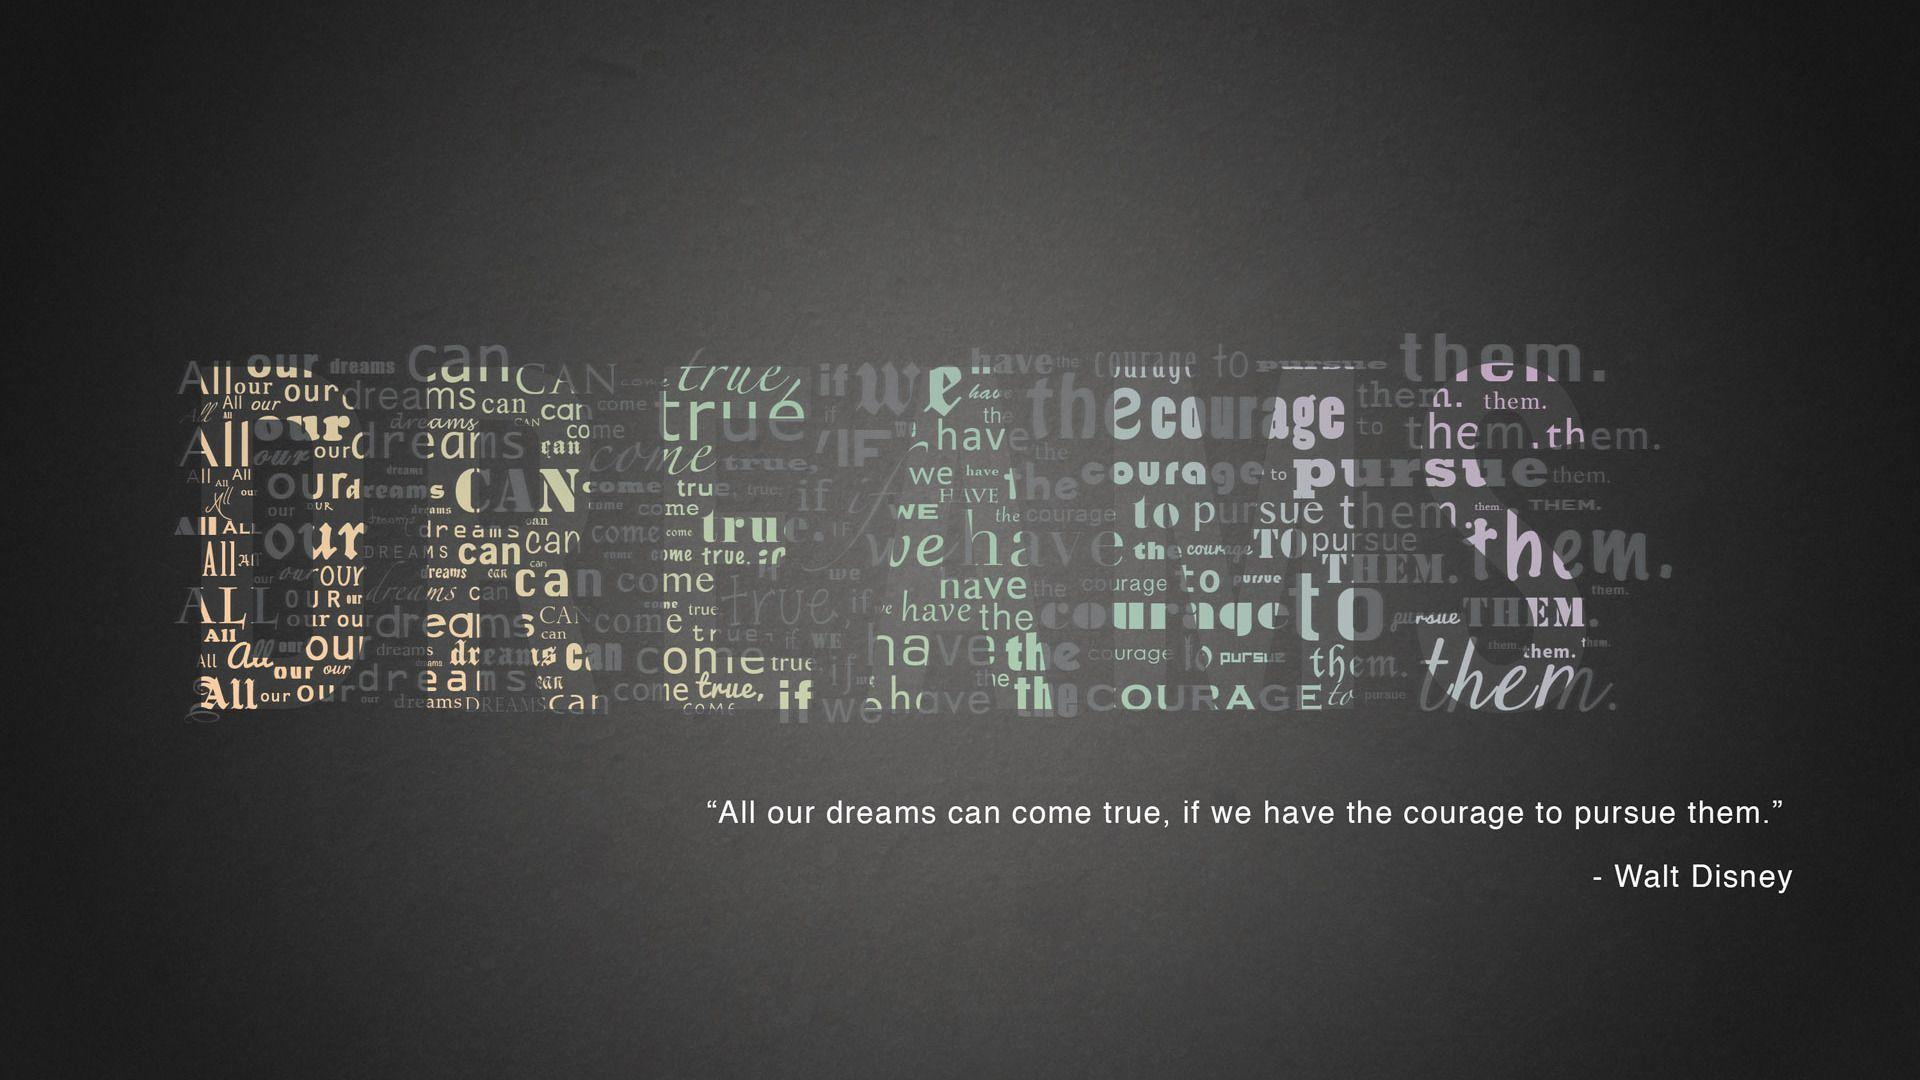 Hd wallpaper quite - Walt Disney Quote Quote Hd Wallpaper 1920x1080 9802 Quotes